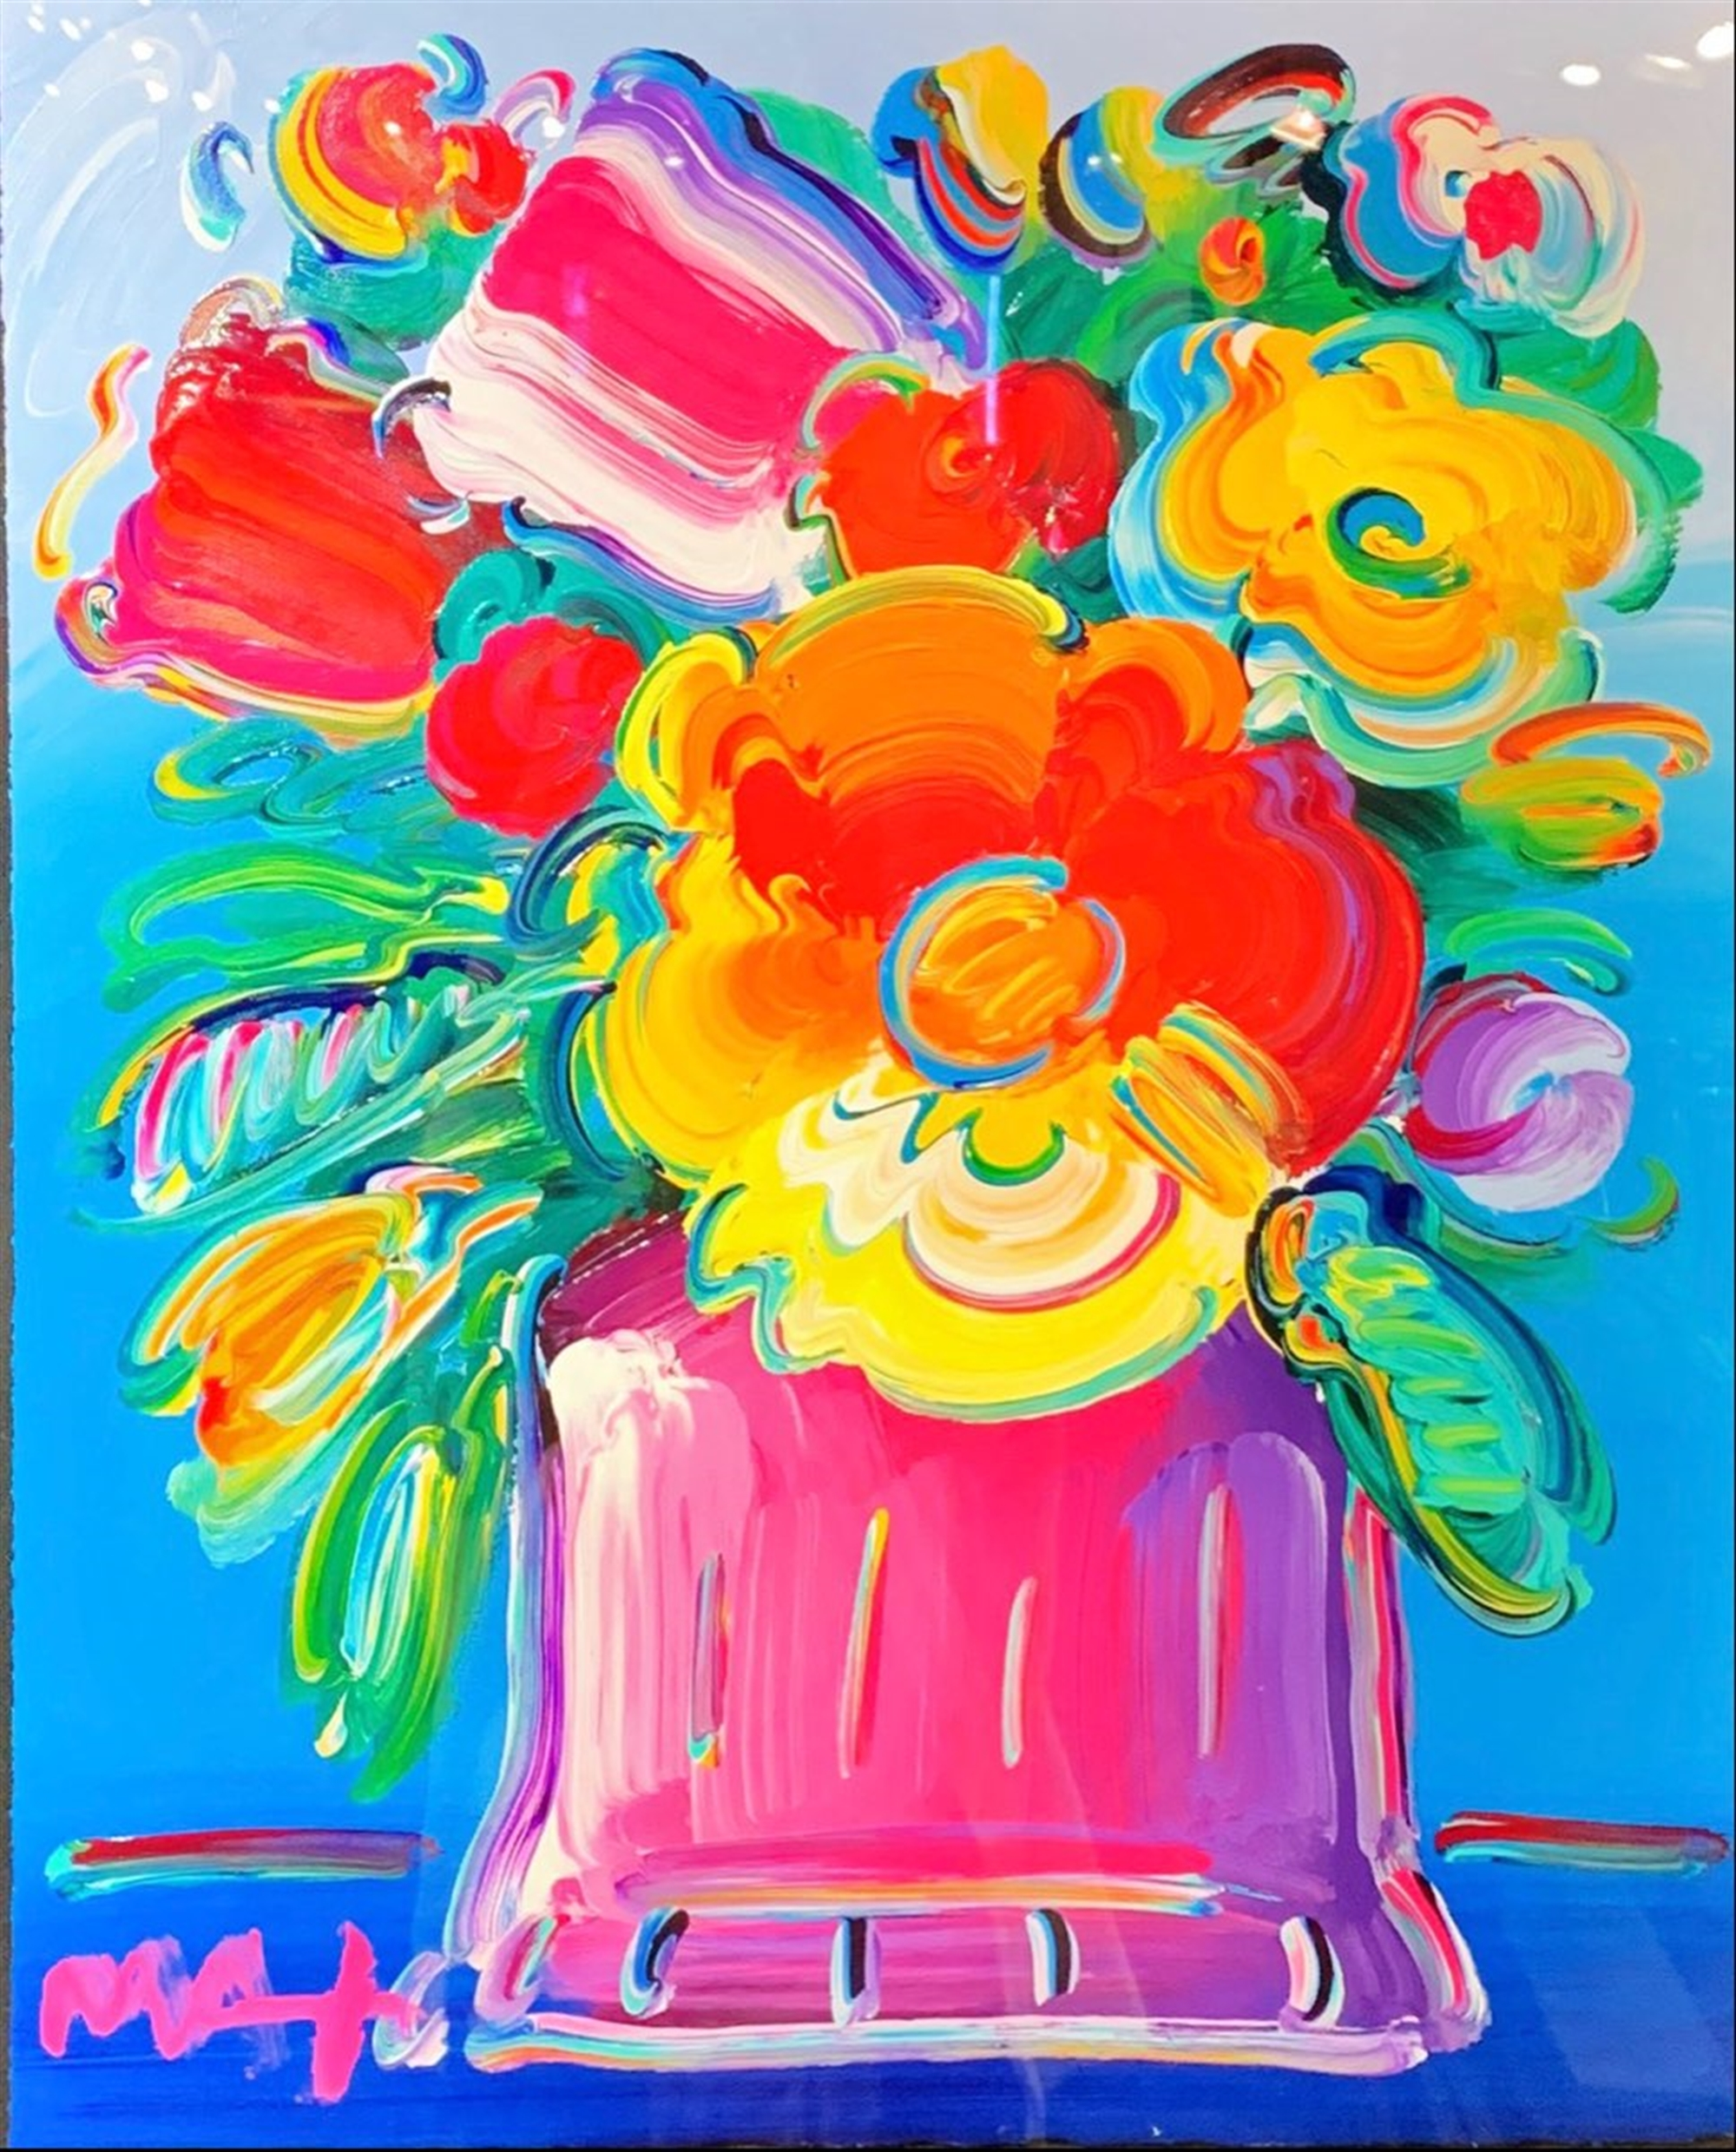 Abstract Flowers by Peter Max